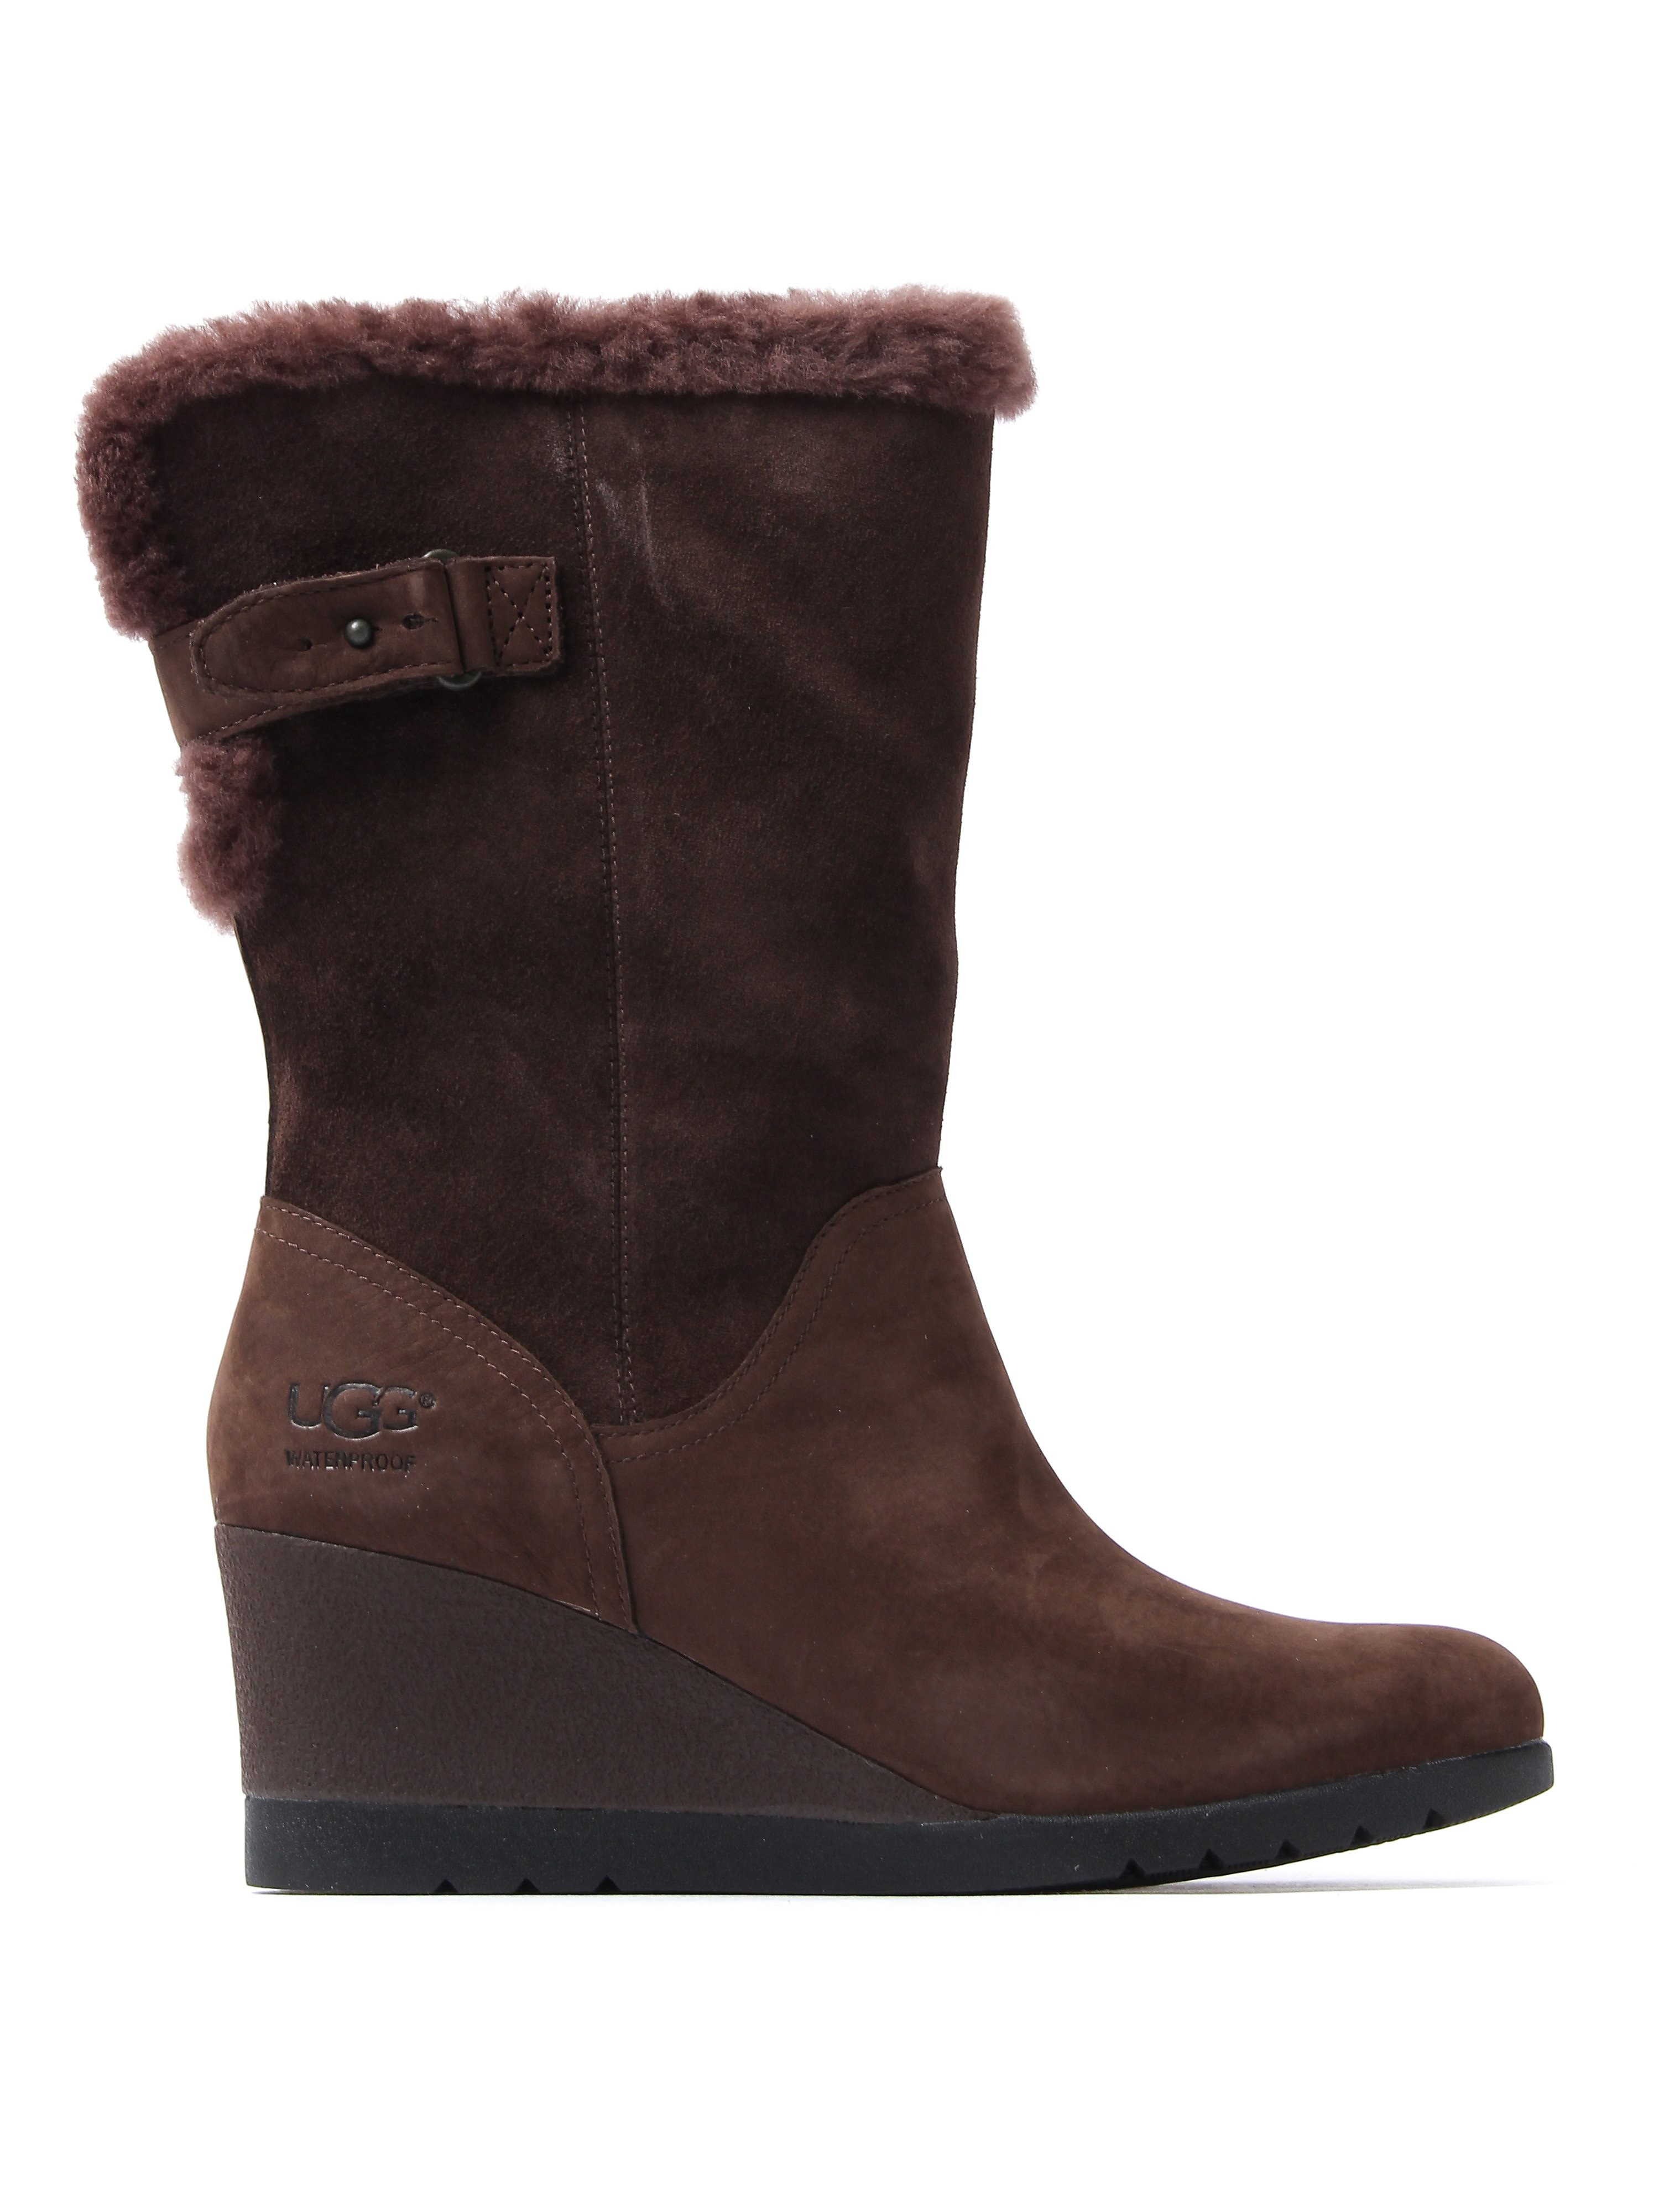 UGG Women's Edelina Tall Boots - Grizzly Suede